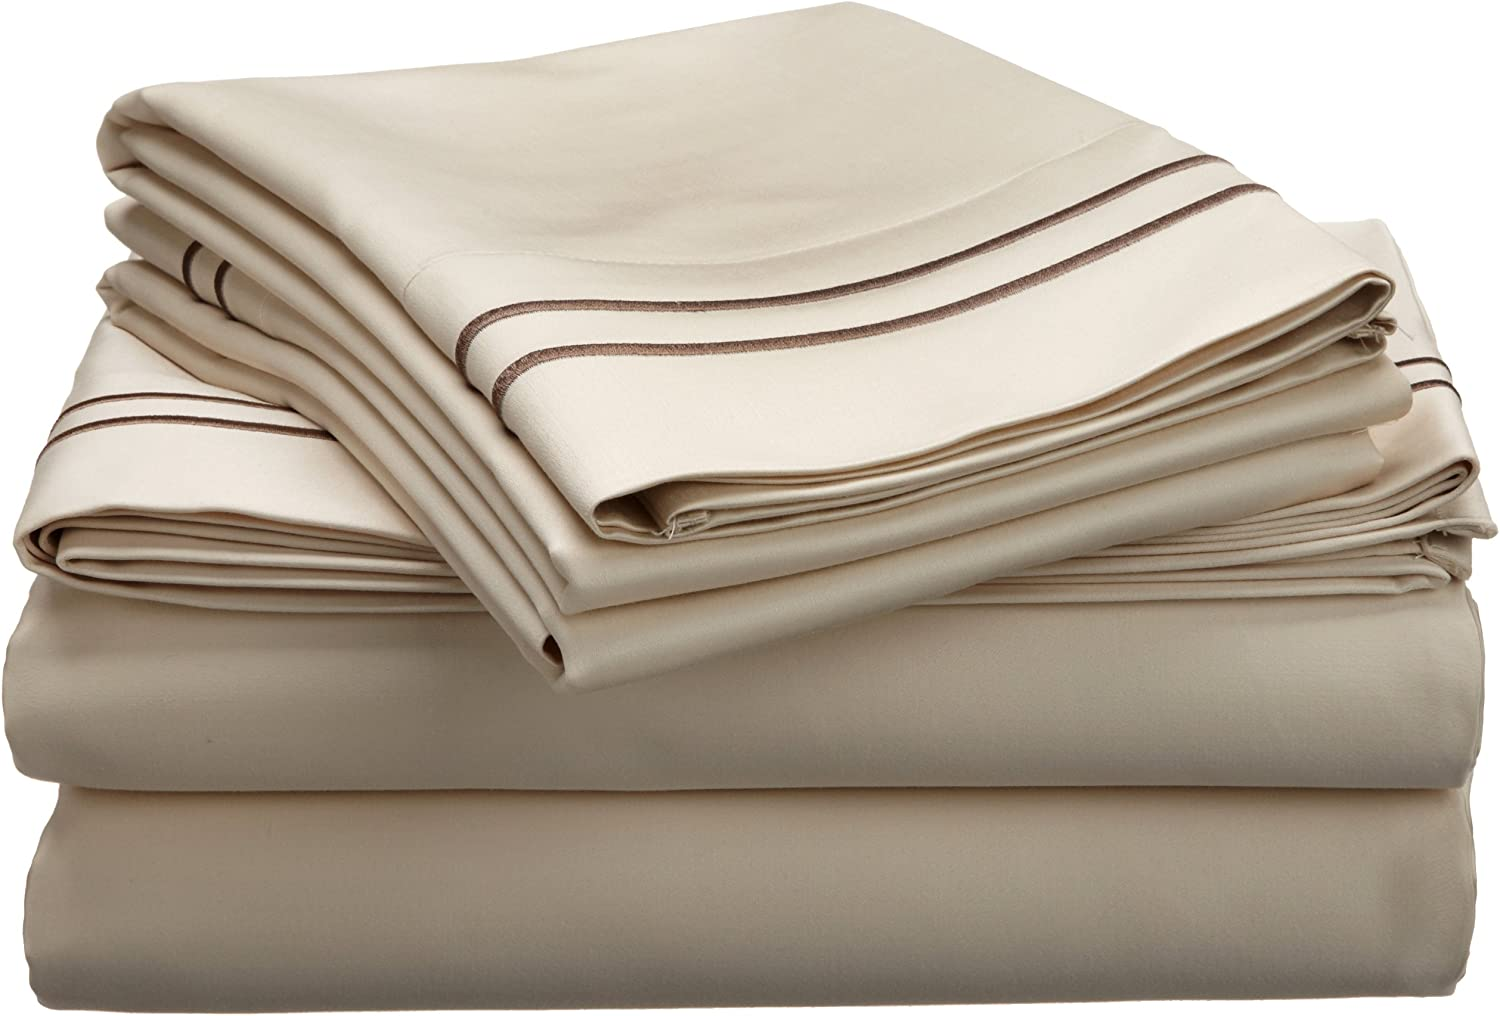 Impressions 1600 Thread Count Cotton Oversize Long-Staple Special price for a limited time Combed Superior